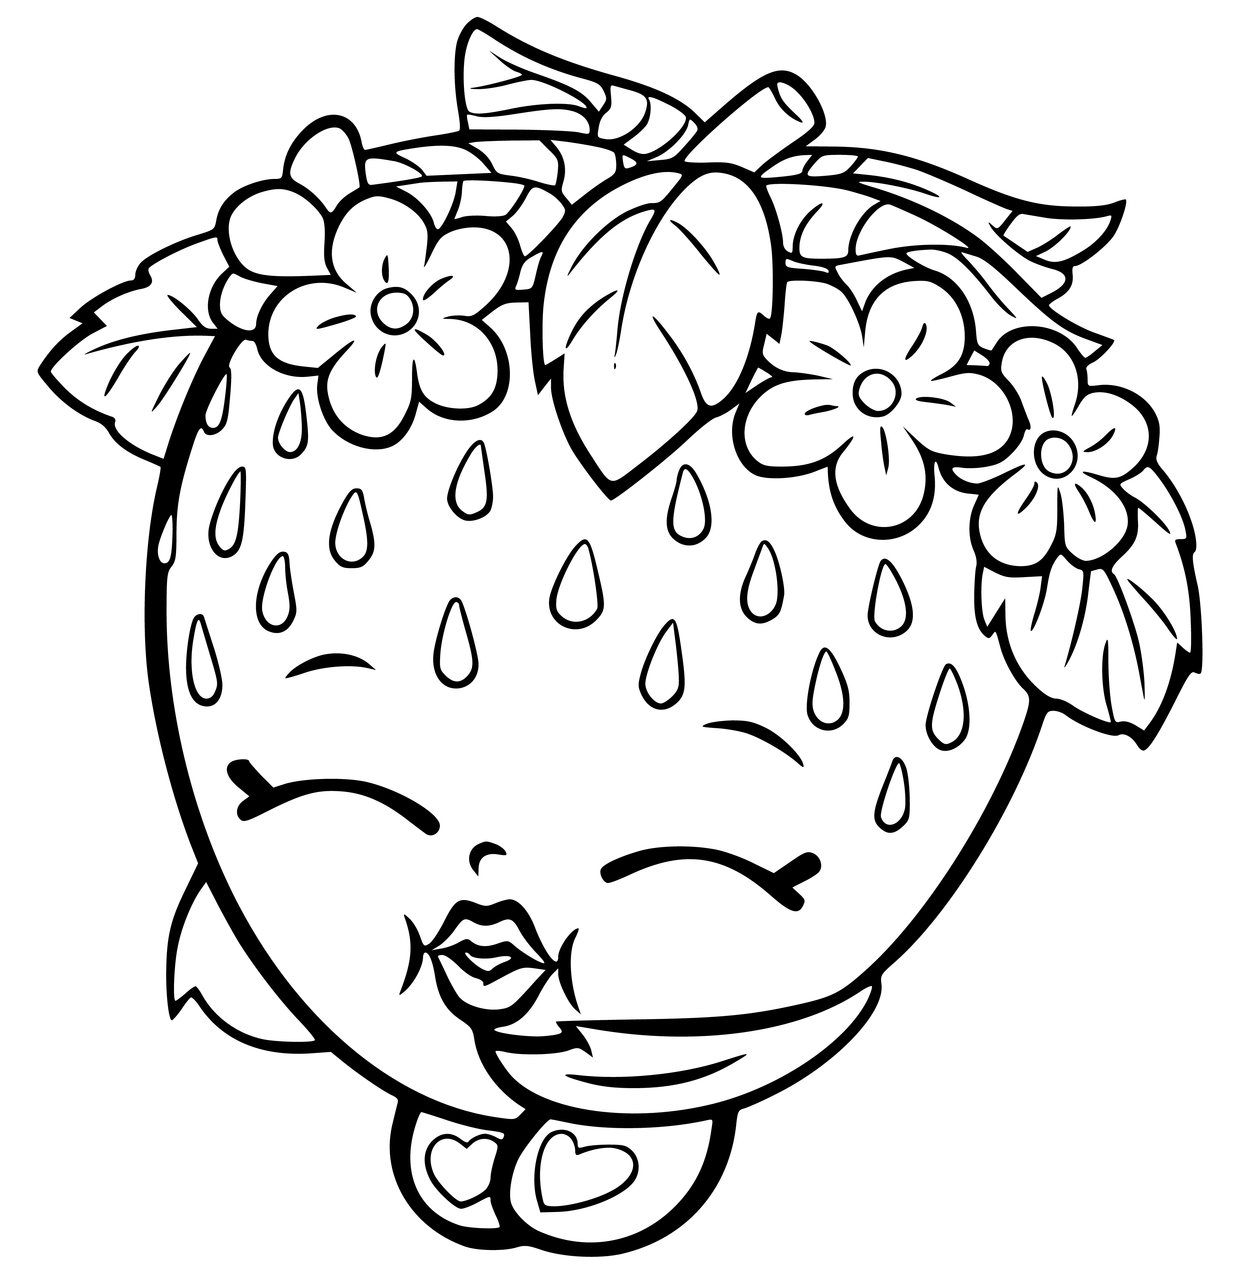 - Shopkins Coloring Pages To Print Shopkins Coloring Pages